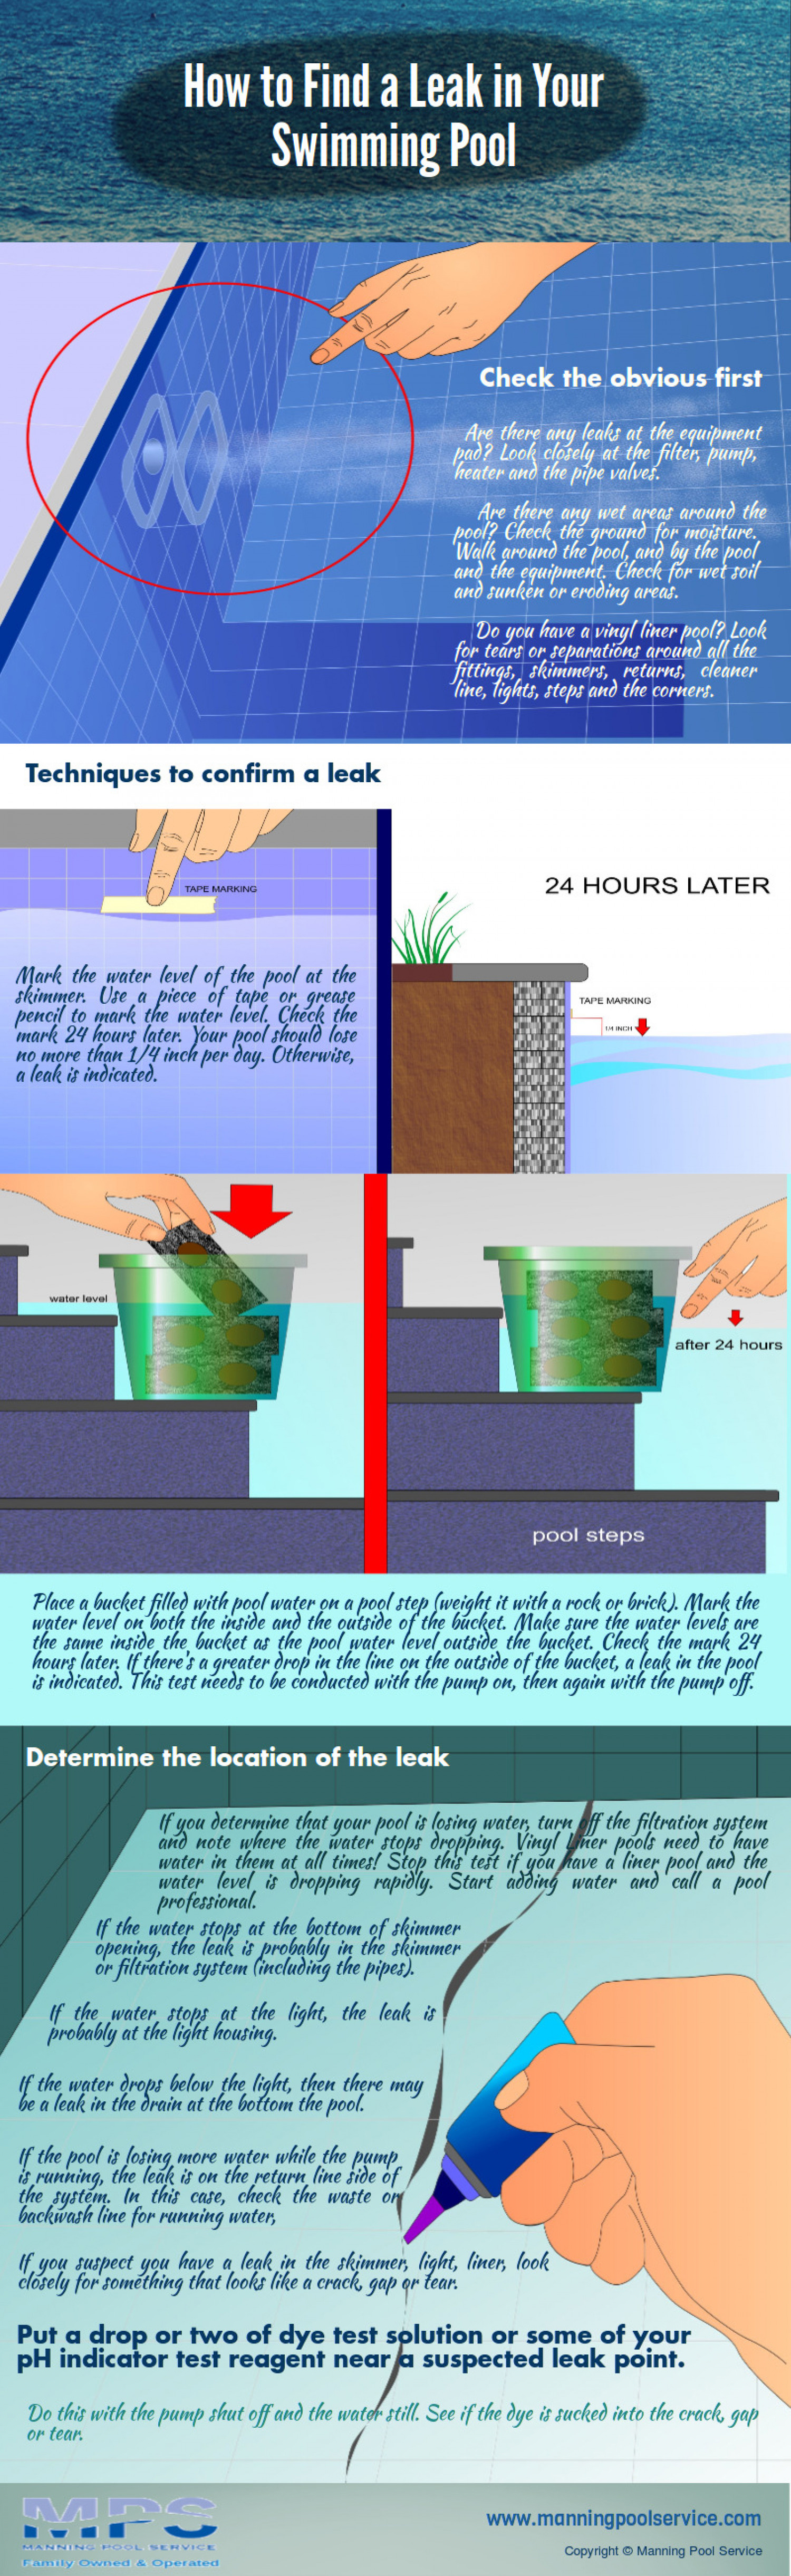 How To Find A Leak In Your Swimming Pool